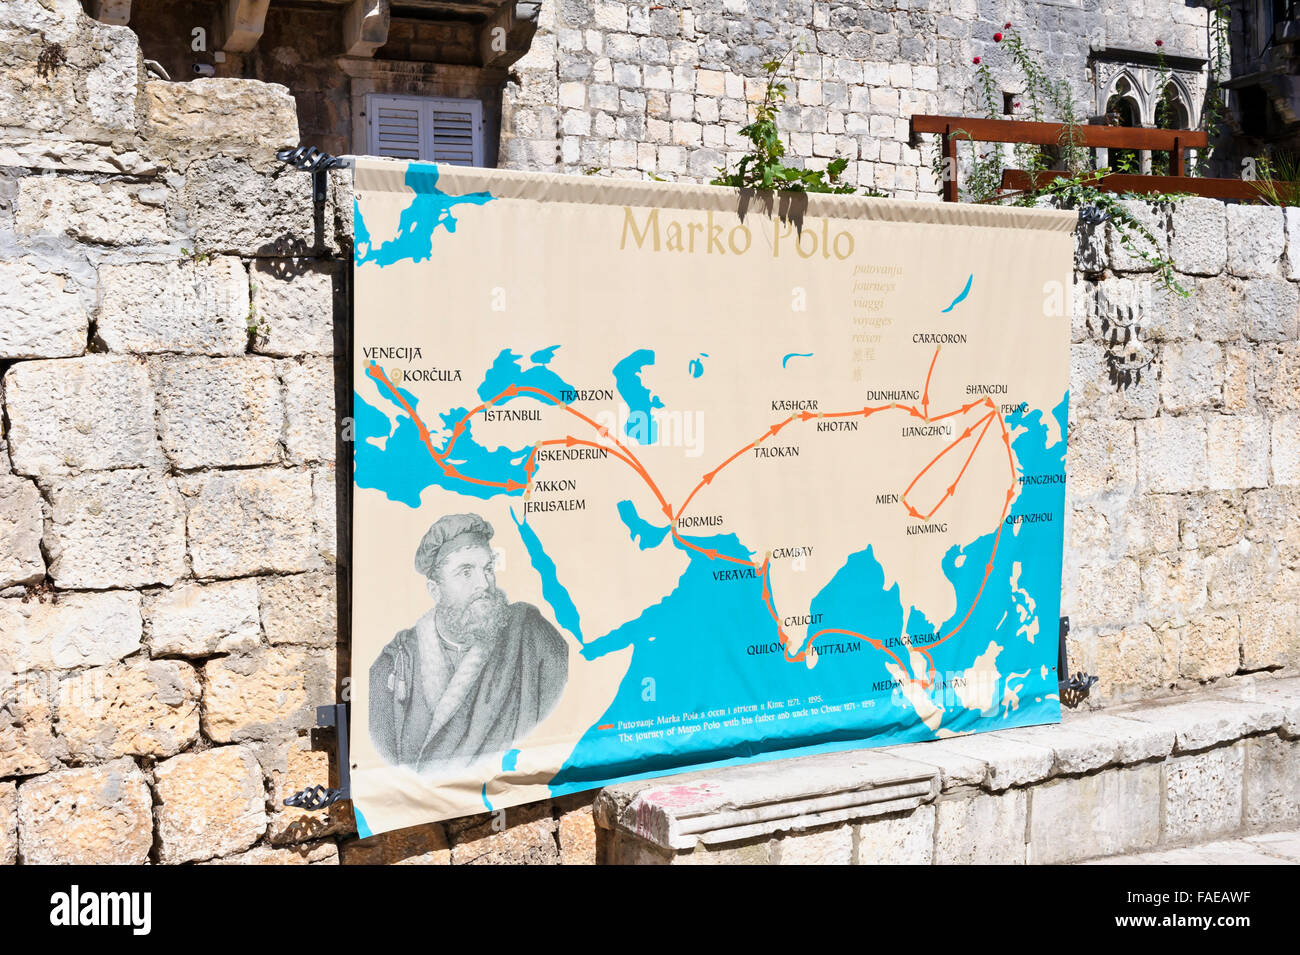 A world map tracing marco polo journey on display on a small wall by a world map tracing marco polo journey on display on a small wall by his old house korcula croatia gumiabroncs Image collections